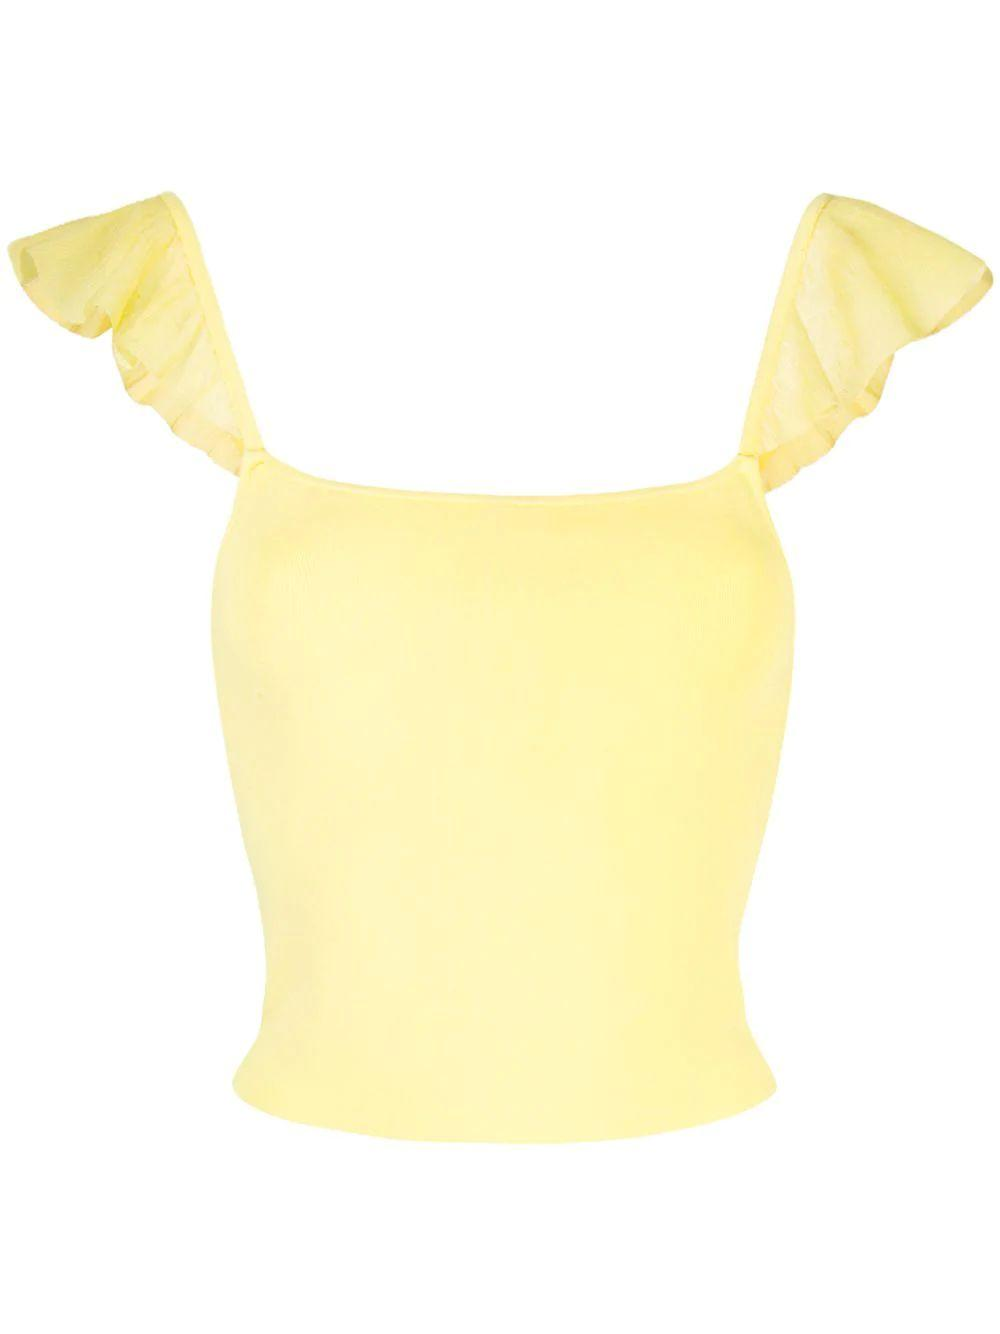 Marg Ruffle Strap Crop Top